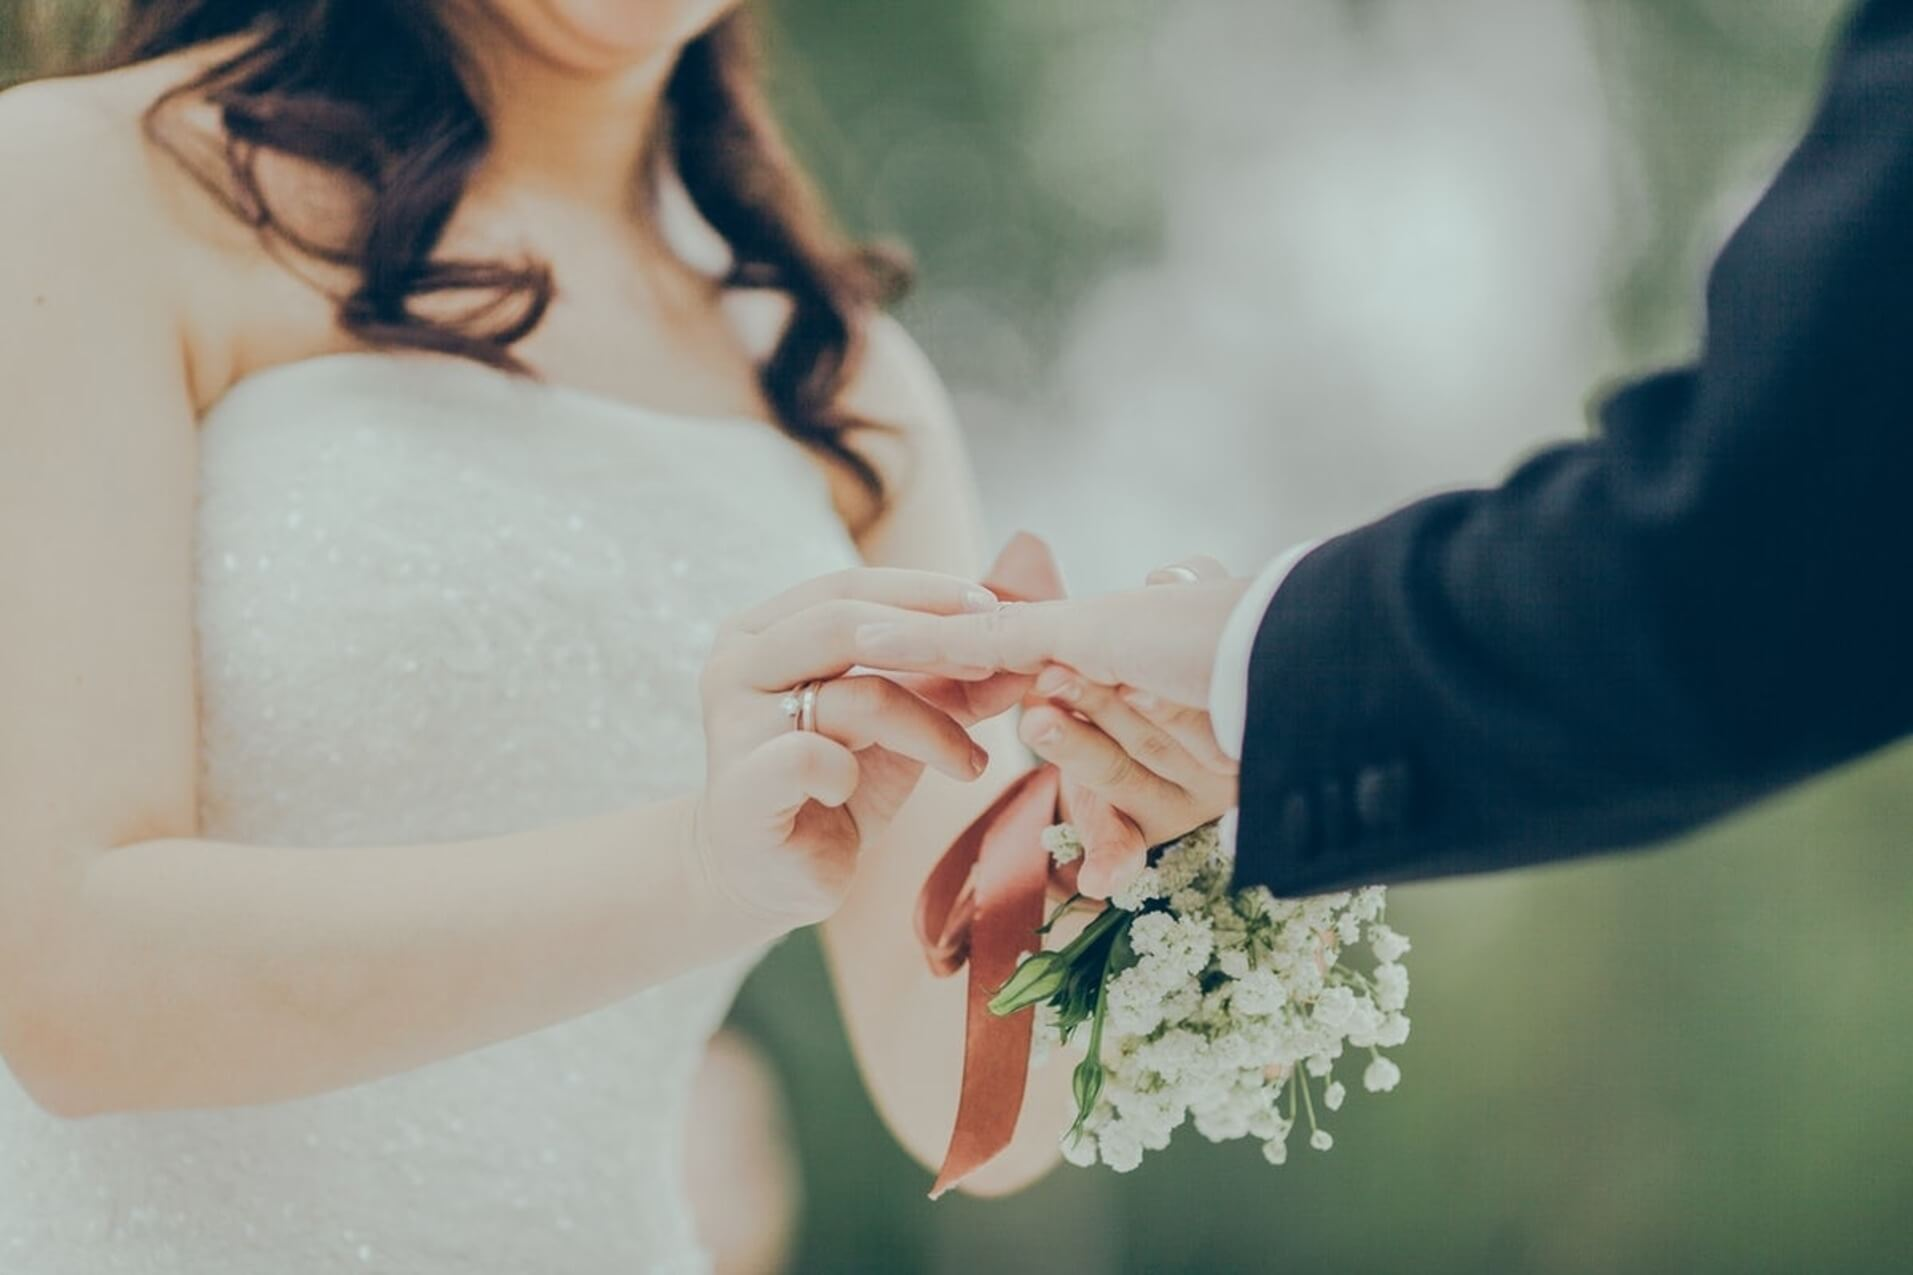 Qualities of Wedding Organizers - Making It through Wedding Planning With Less Stress